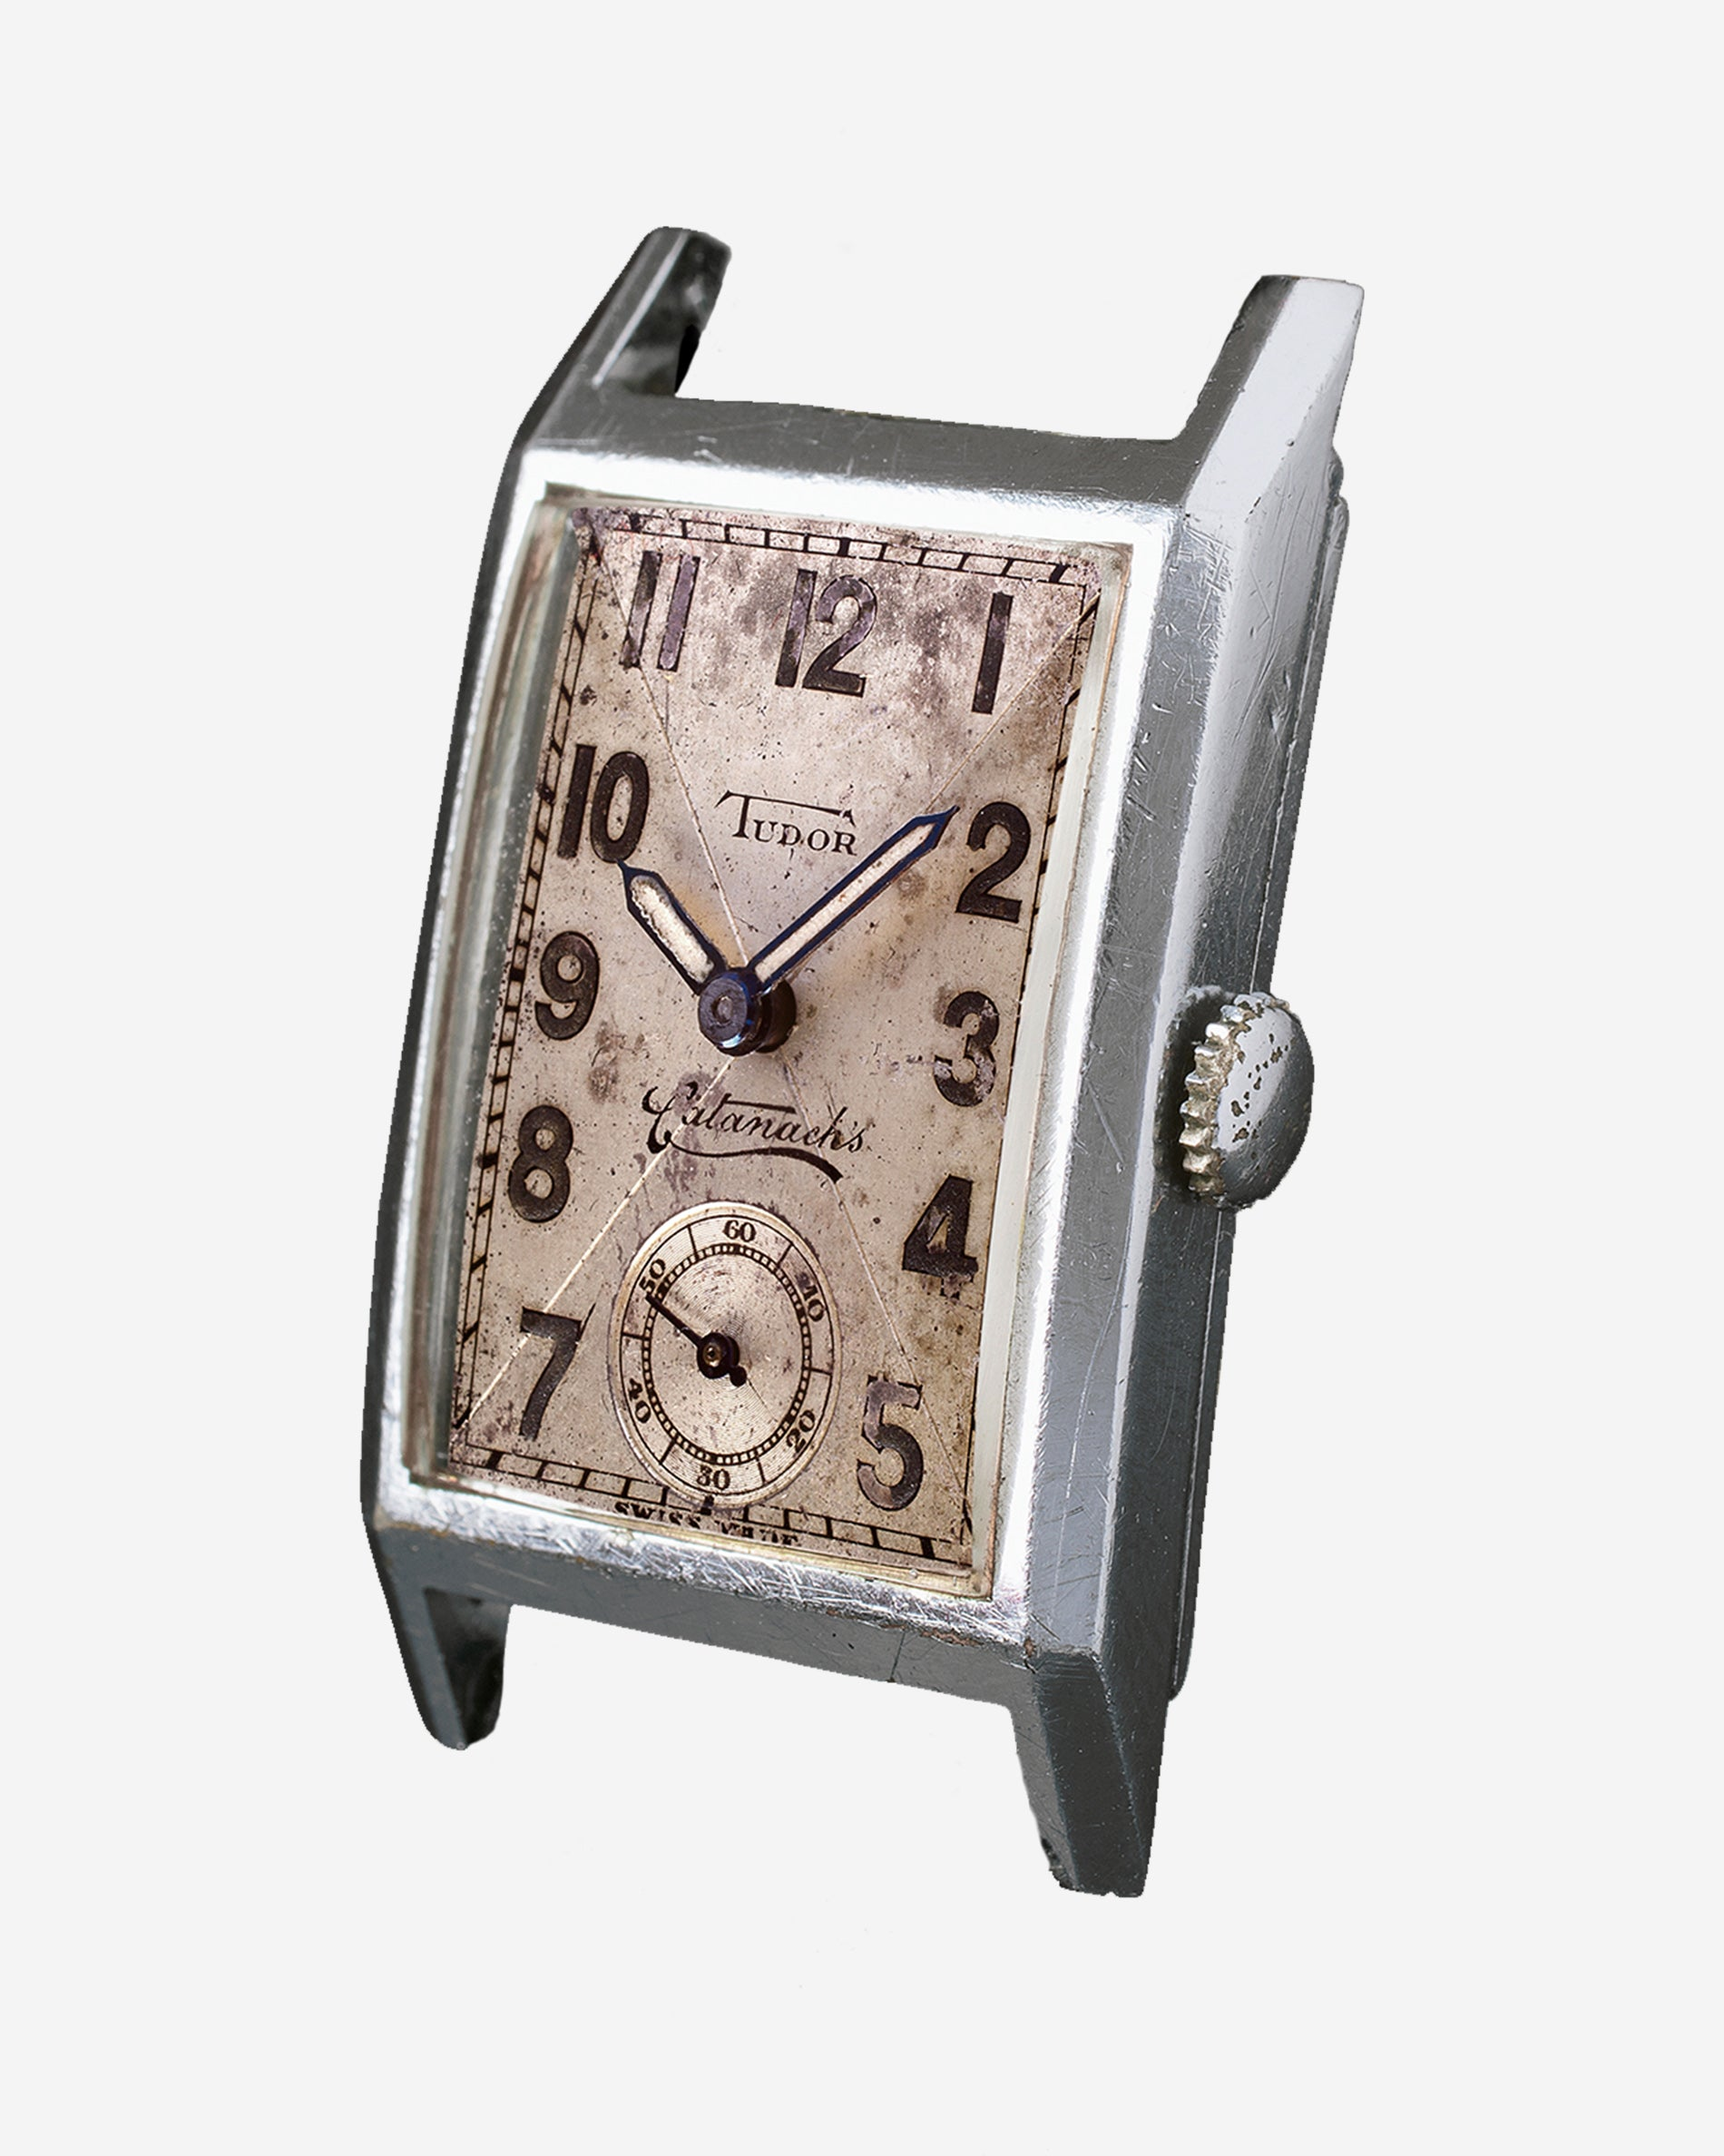 Tudor Catanachs rectangular wristwatch from 1932 fro A Collected Man London